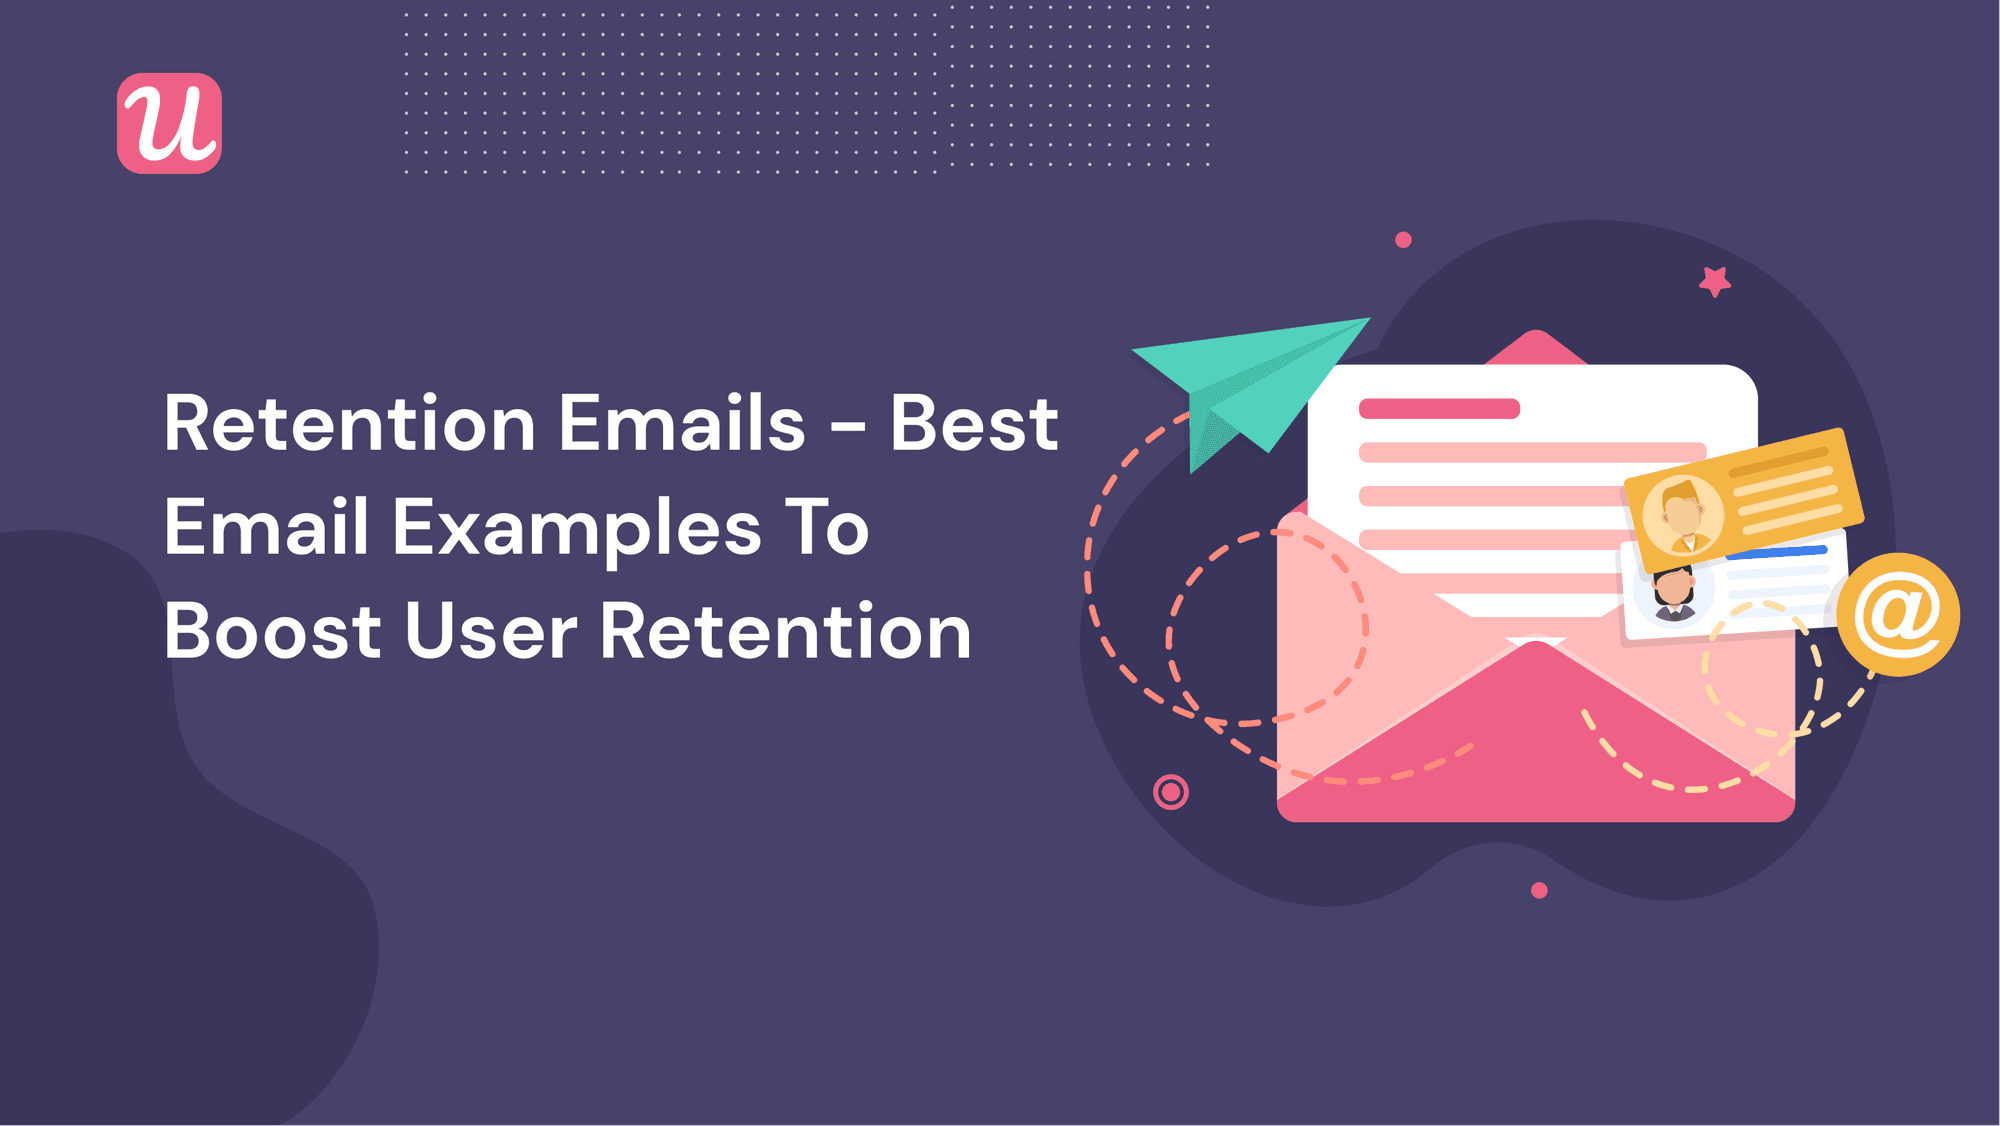 5 of The Best Customer Retention Emails  (With Examples)